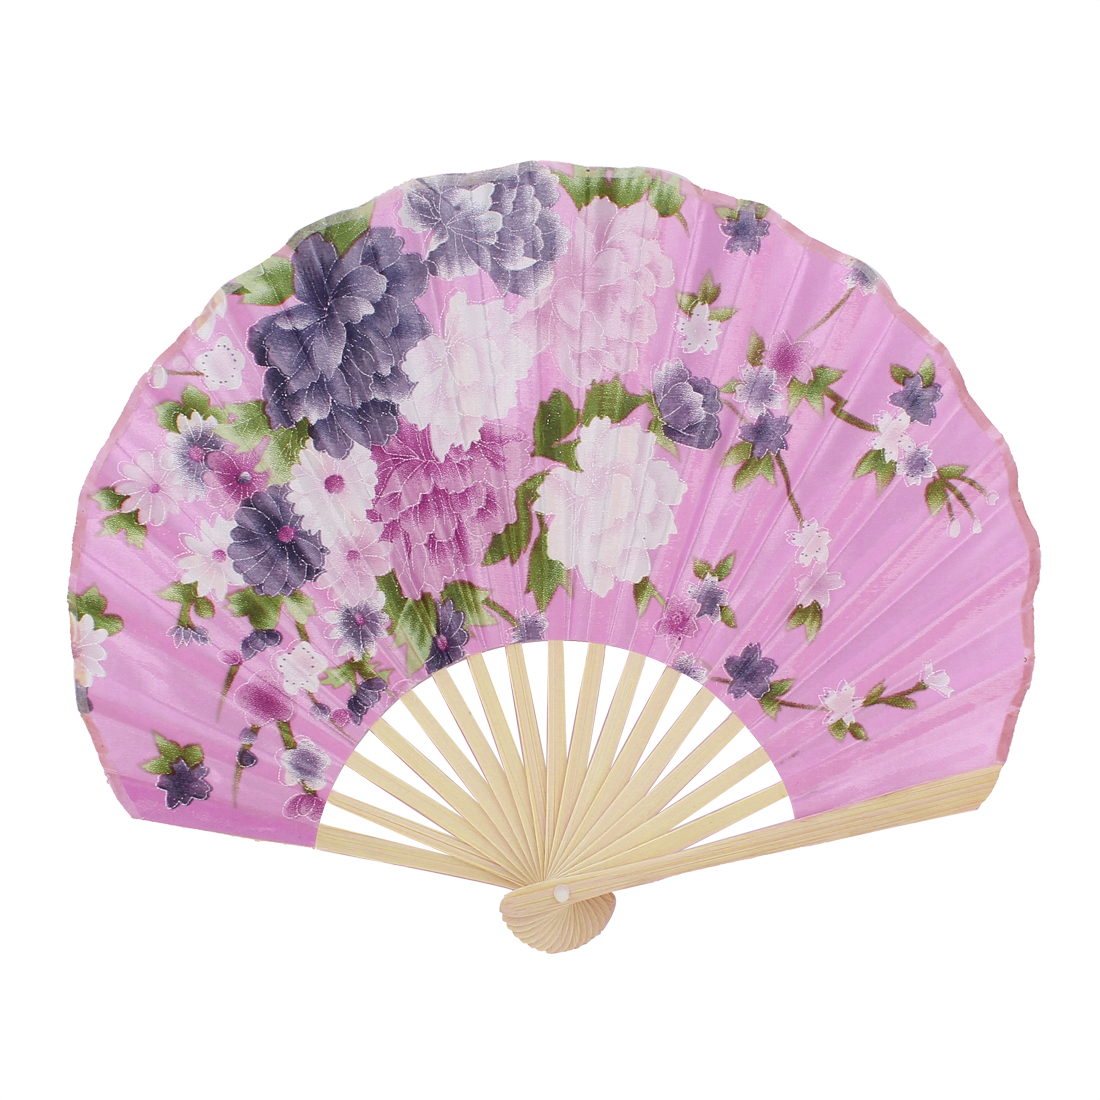 Seashell Design Floral Printed Japanese Style Foldable Hand Fan Pink